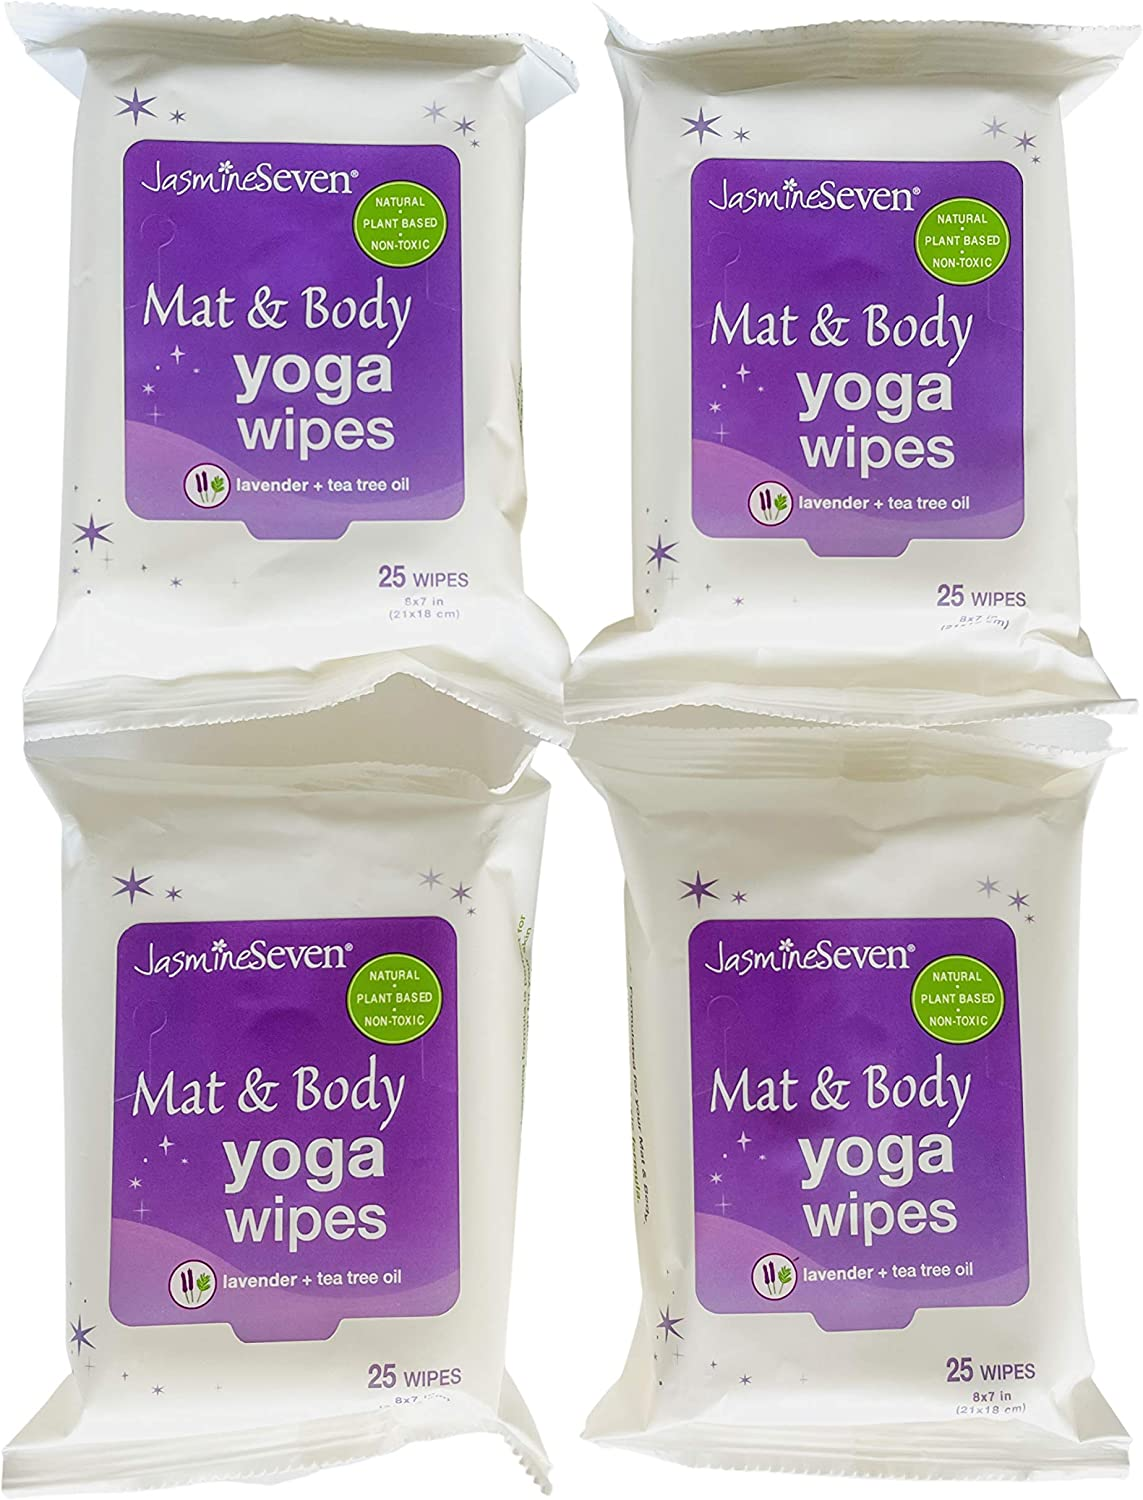 Yoga Wipes for Mat and Body – Natural Lavender and Tea Tree – Set of 4 (25 Wipes per Pack) = 100 Wipes - by Jasmine Seven – for Home, Studio, Gym, Travel - New!